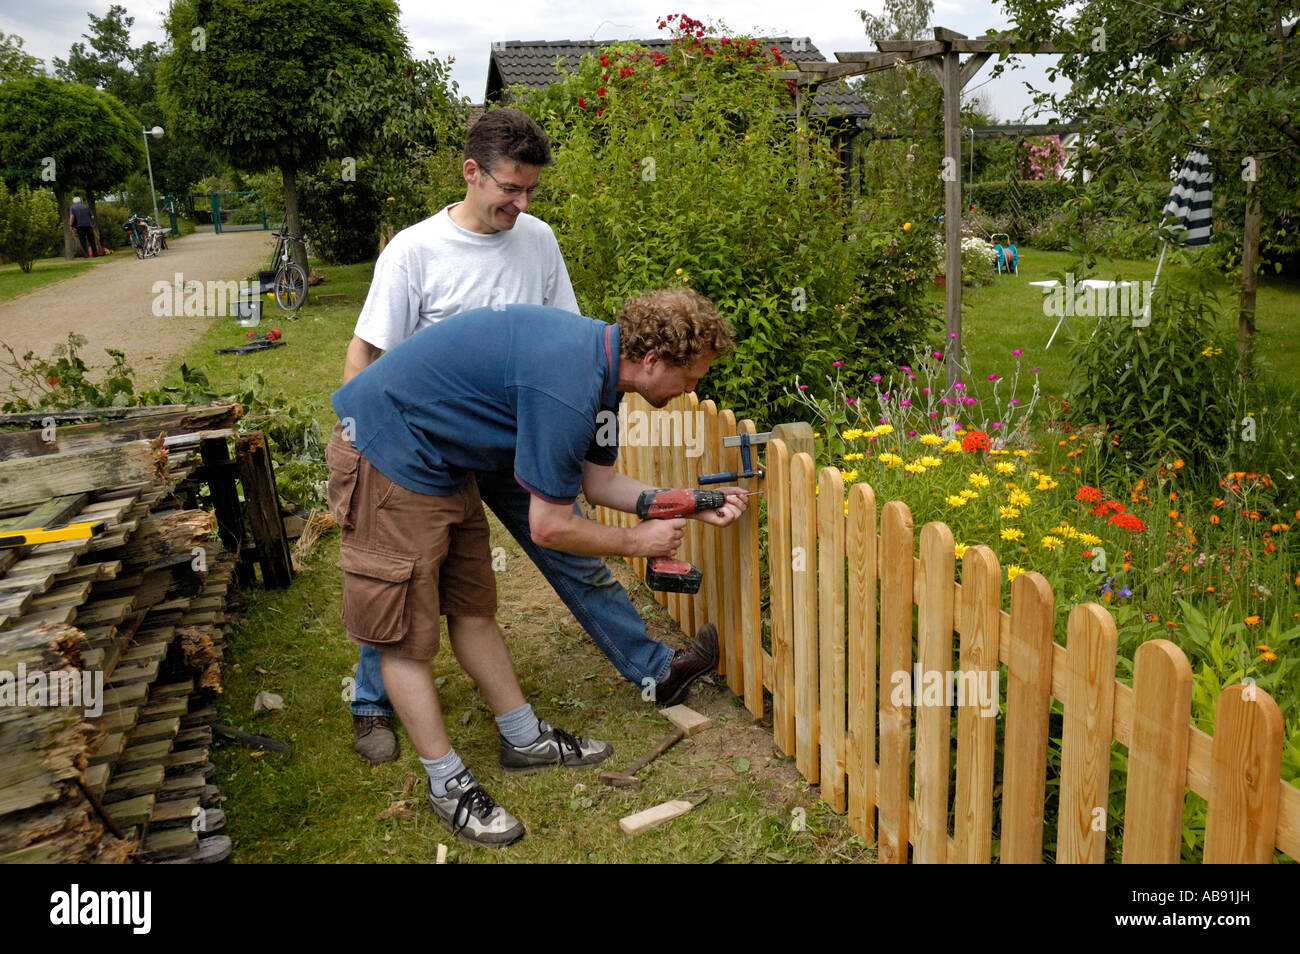 Handymen Building A Garden Fence On Allotments In Germany.   Stock Image